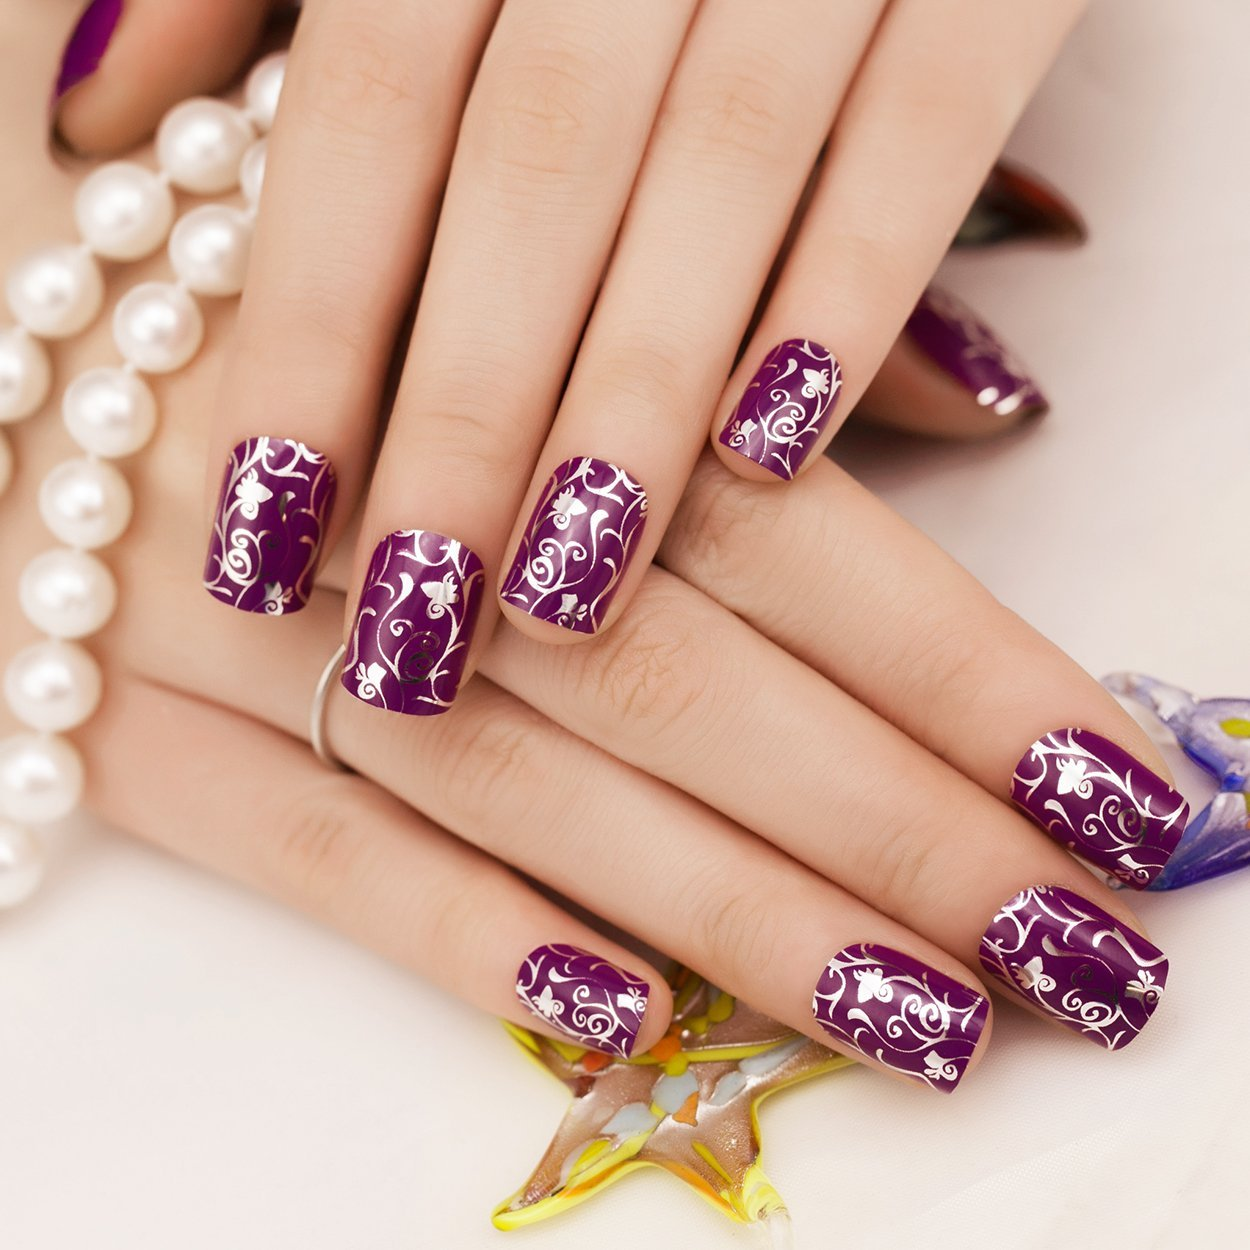 2019 year style- Silver and purple french nails photo